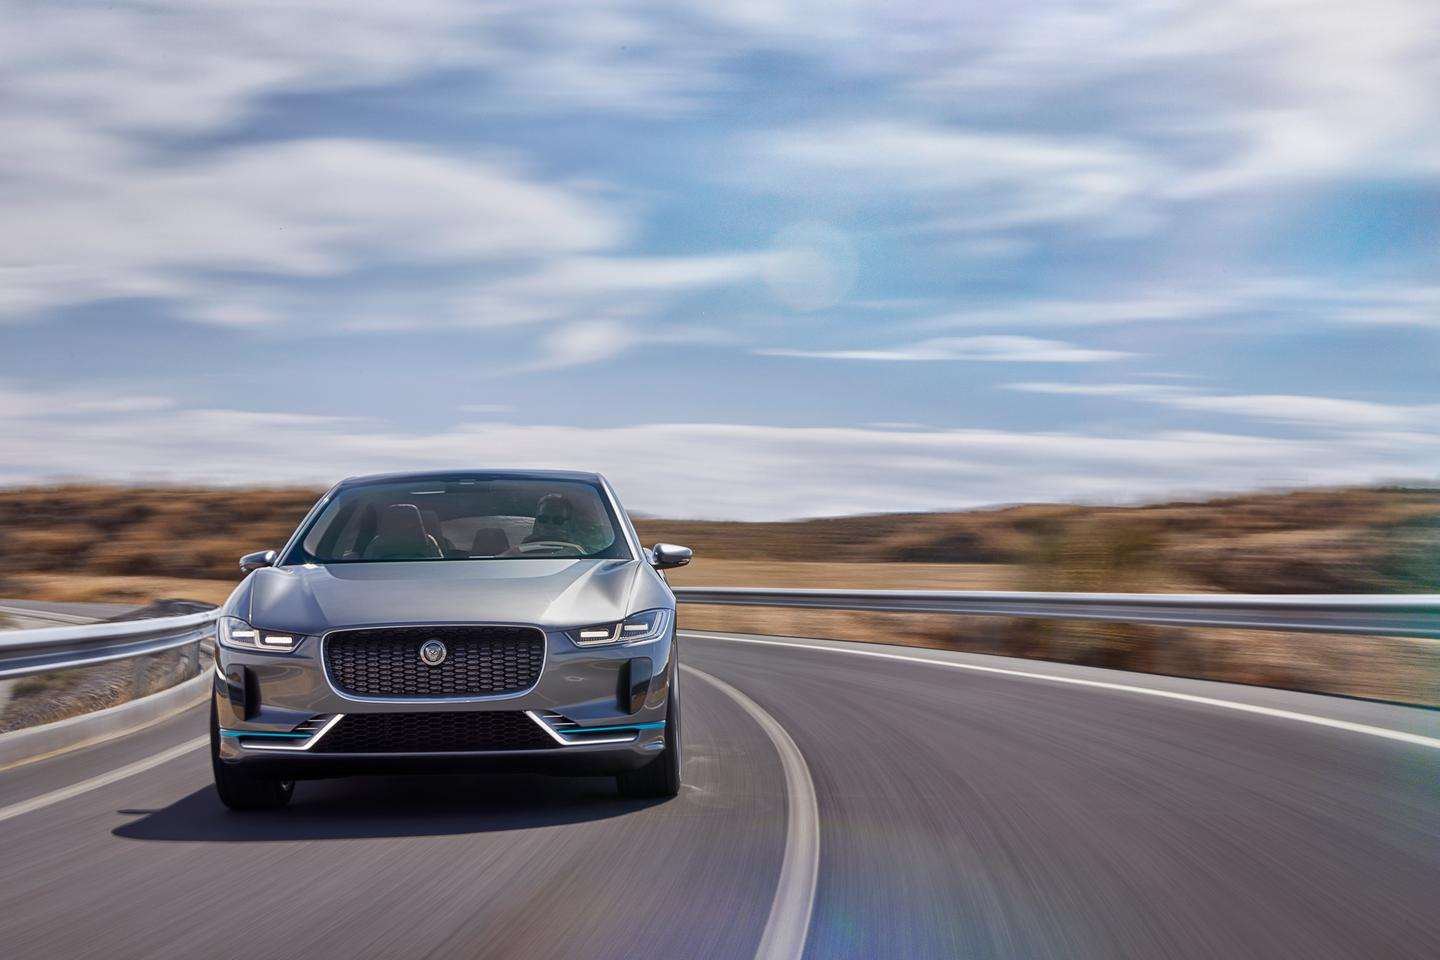 The Jaguar I-Pace will soon be joined by many more all-electric models in the Jaguar stable